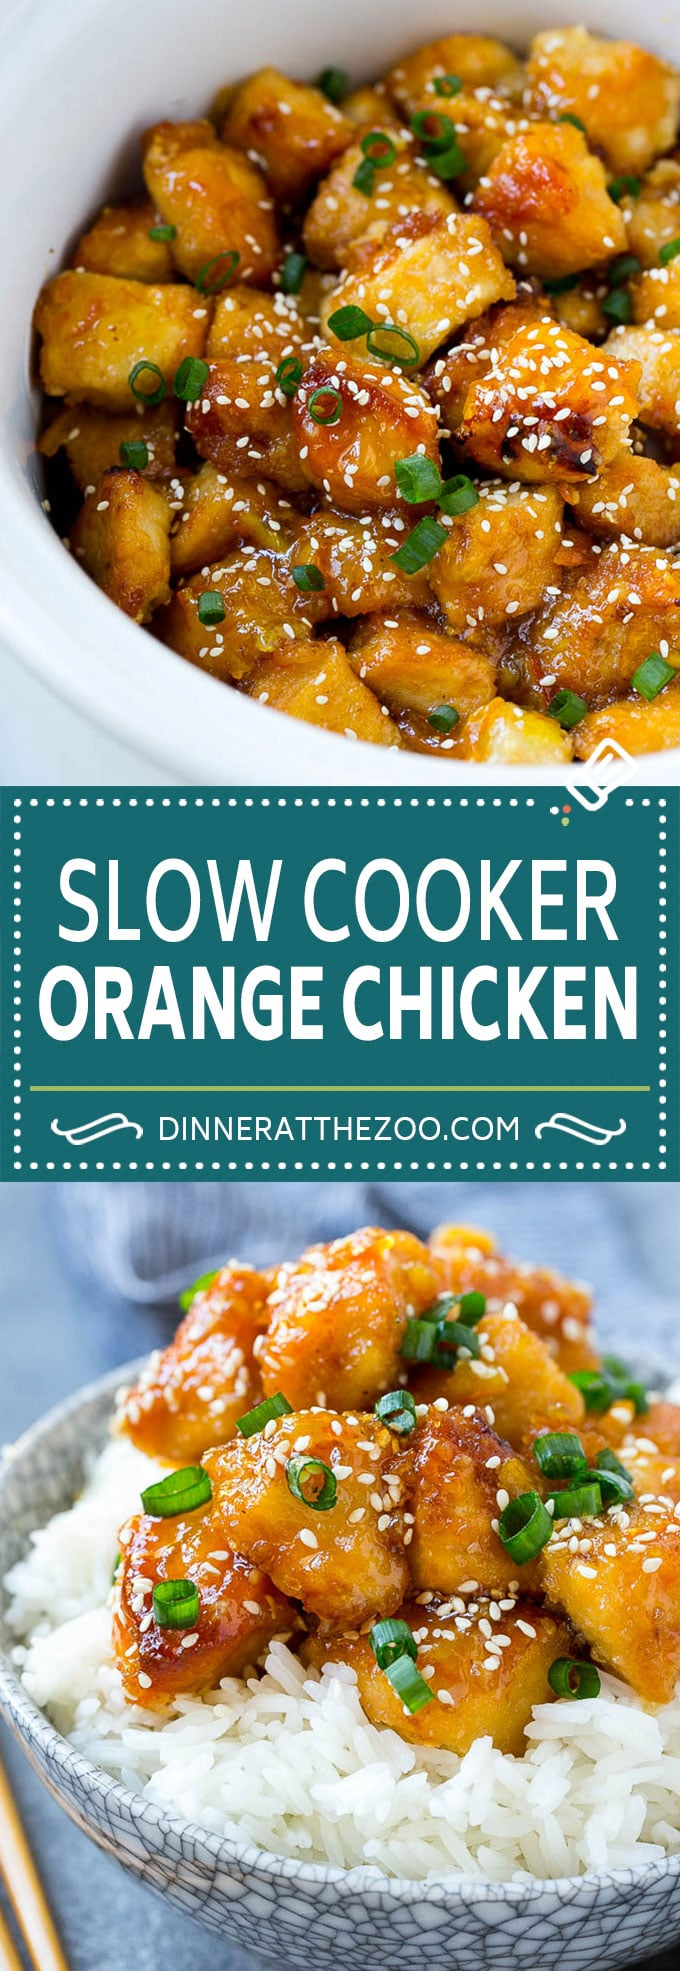 Slow Cooker Orange Chicken - Dinner at the Zoo